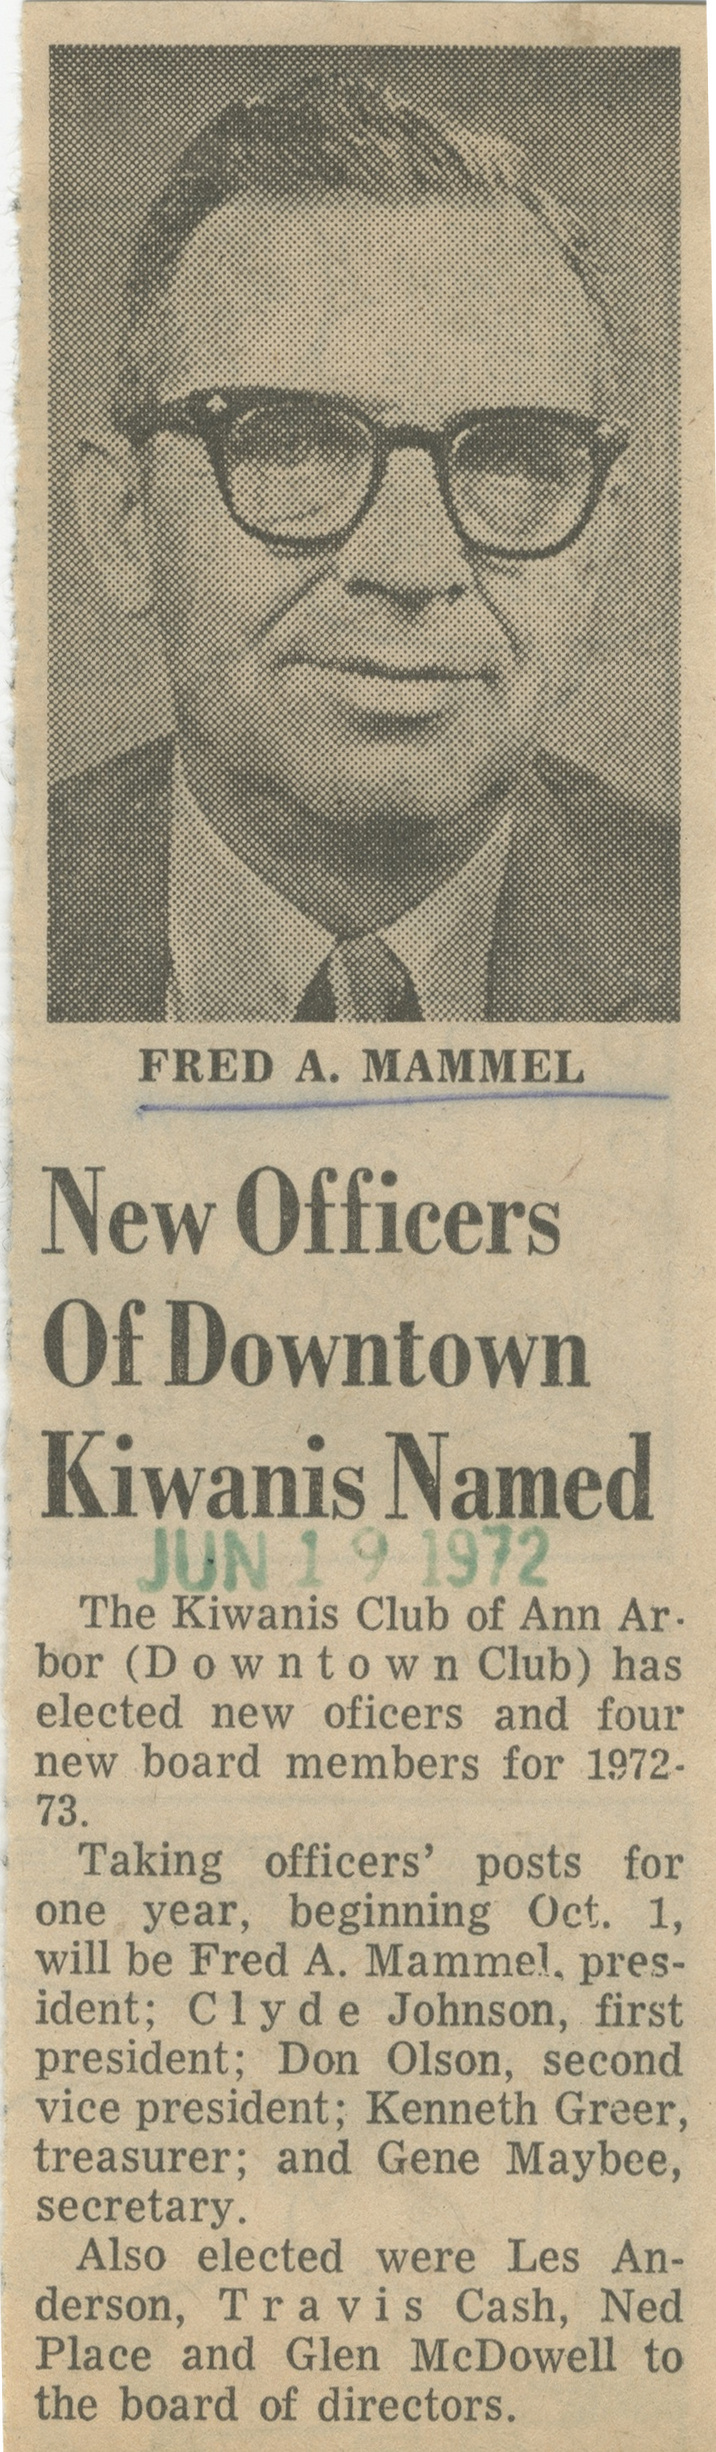 New Officers Of Downtown Kiwanis Named image